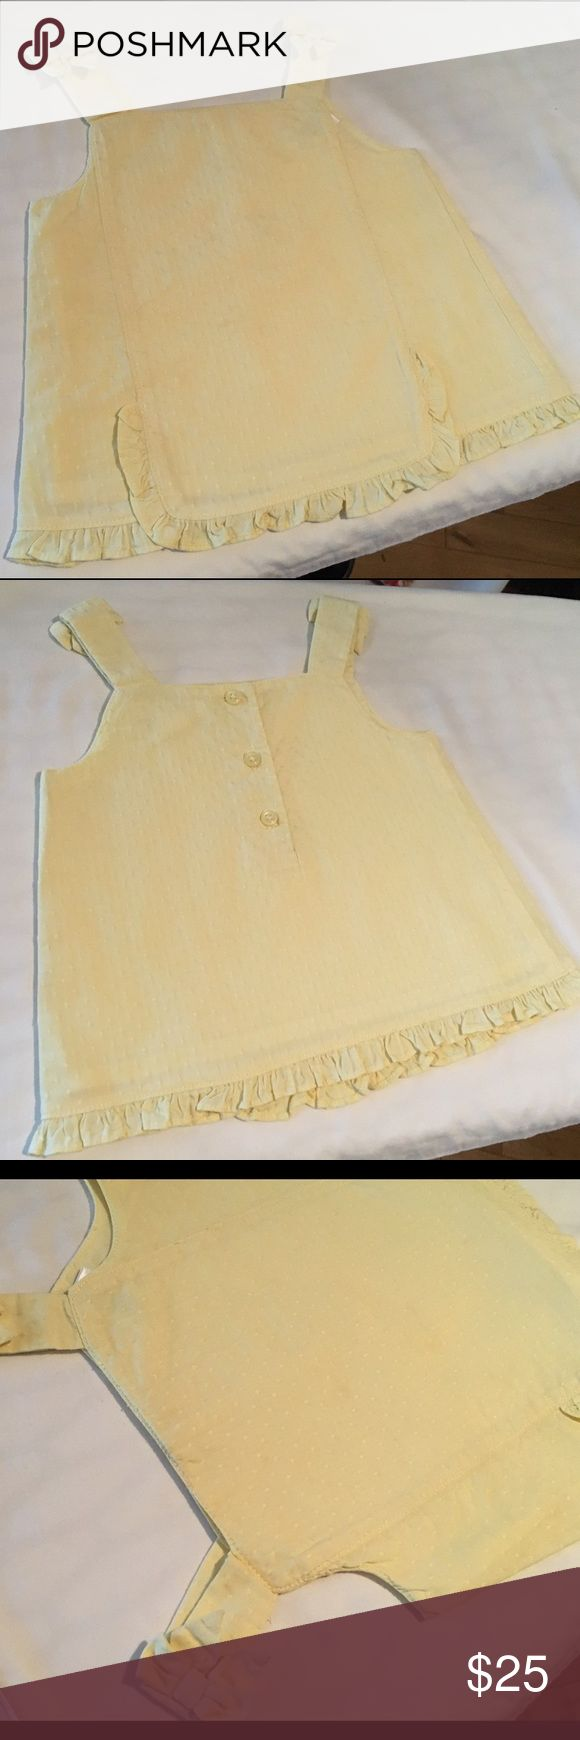 Janie and Jack Poplin Dot Apron Tank W/Bows Adorable yellow cotton tank with dot texture well sewn bows on straps and Button Down back. Great condition. Slight smudges (pictured) barely noticeable. Very cute apron pleat. Well designed. Great quality. Guaranteed clean from a smoke free home! Ships fast! Janie and Jack Shirts & Tops Tank Tops